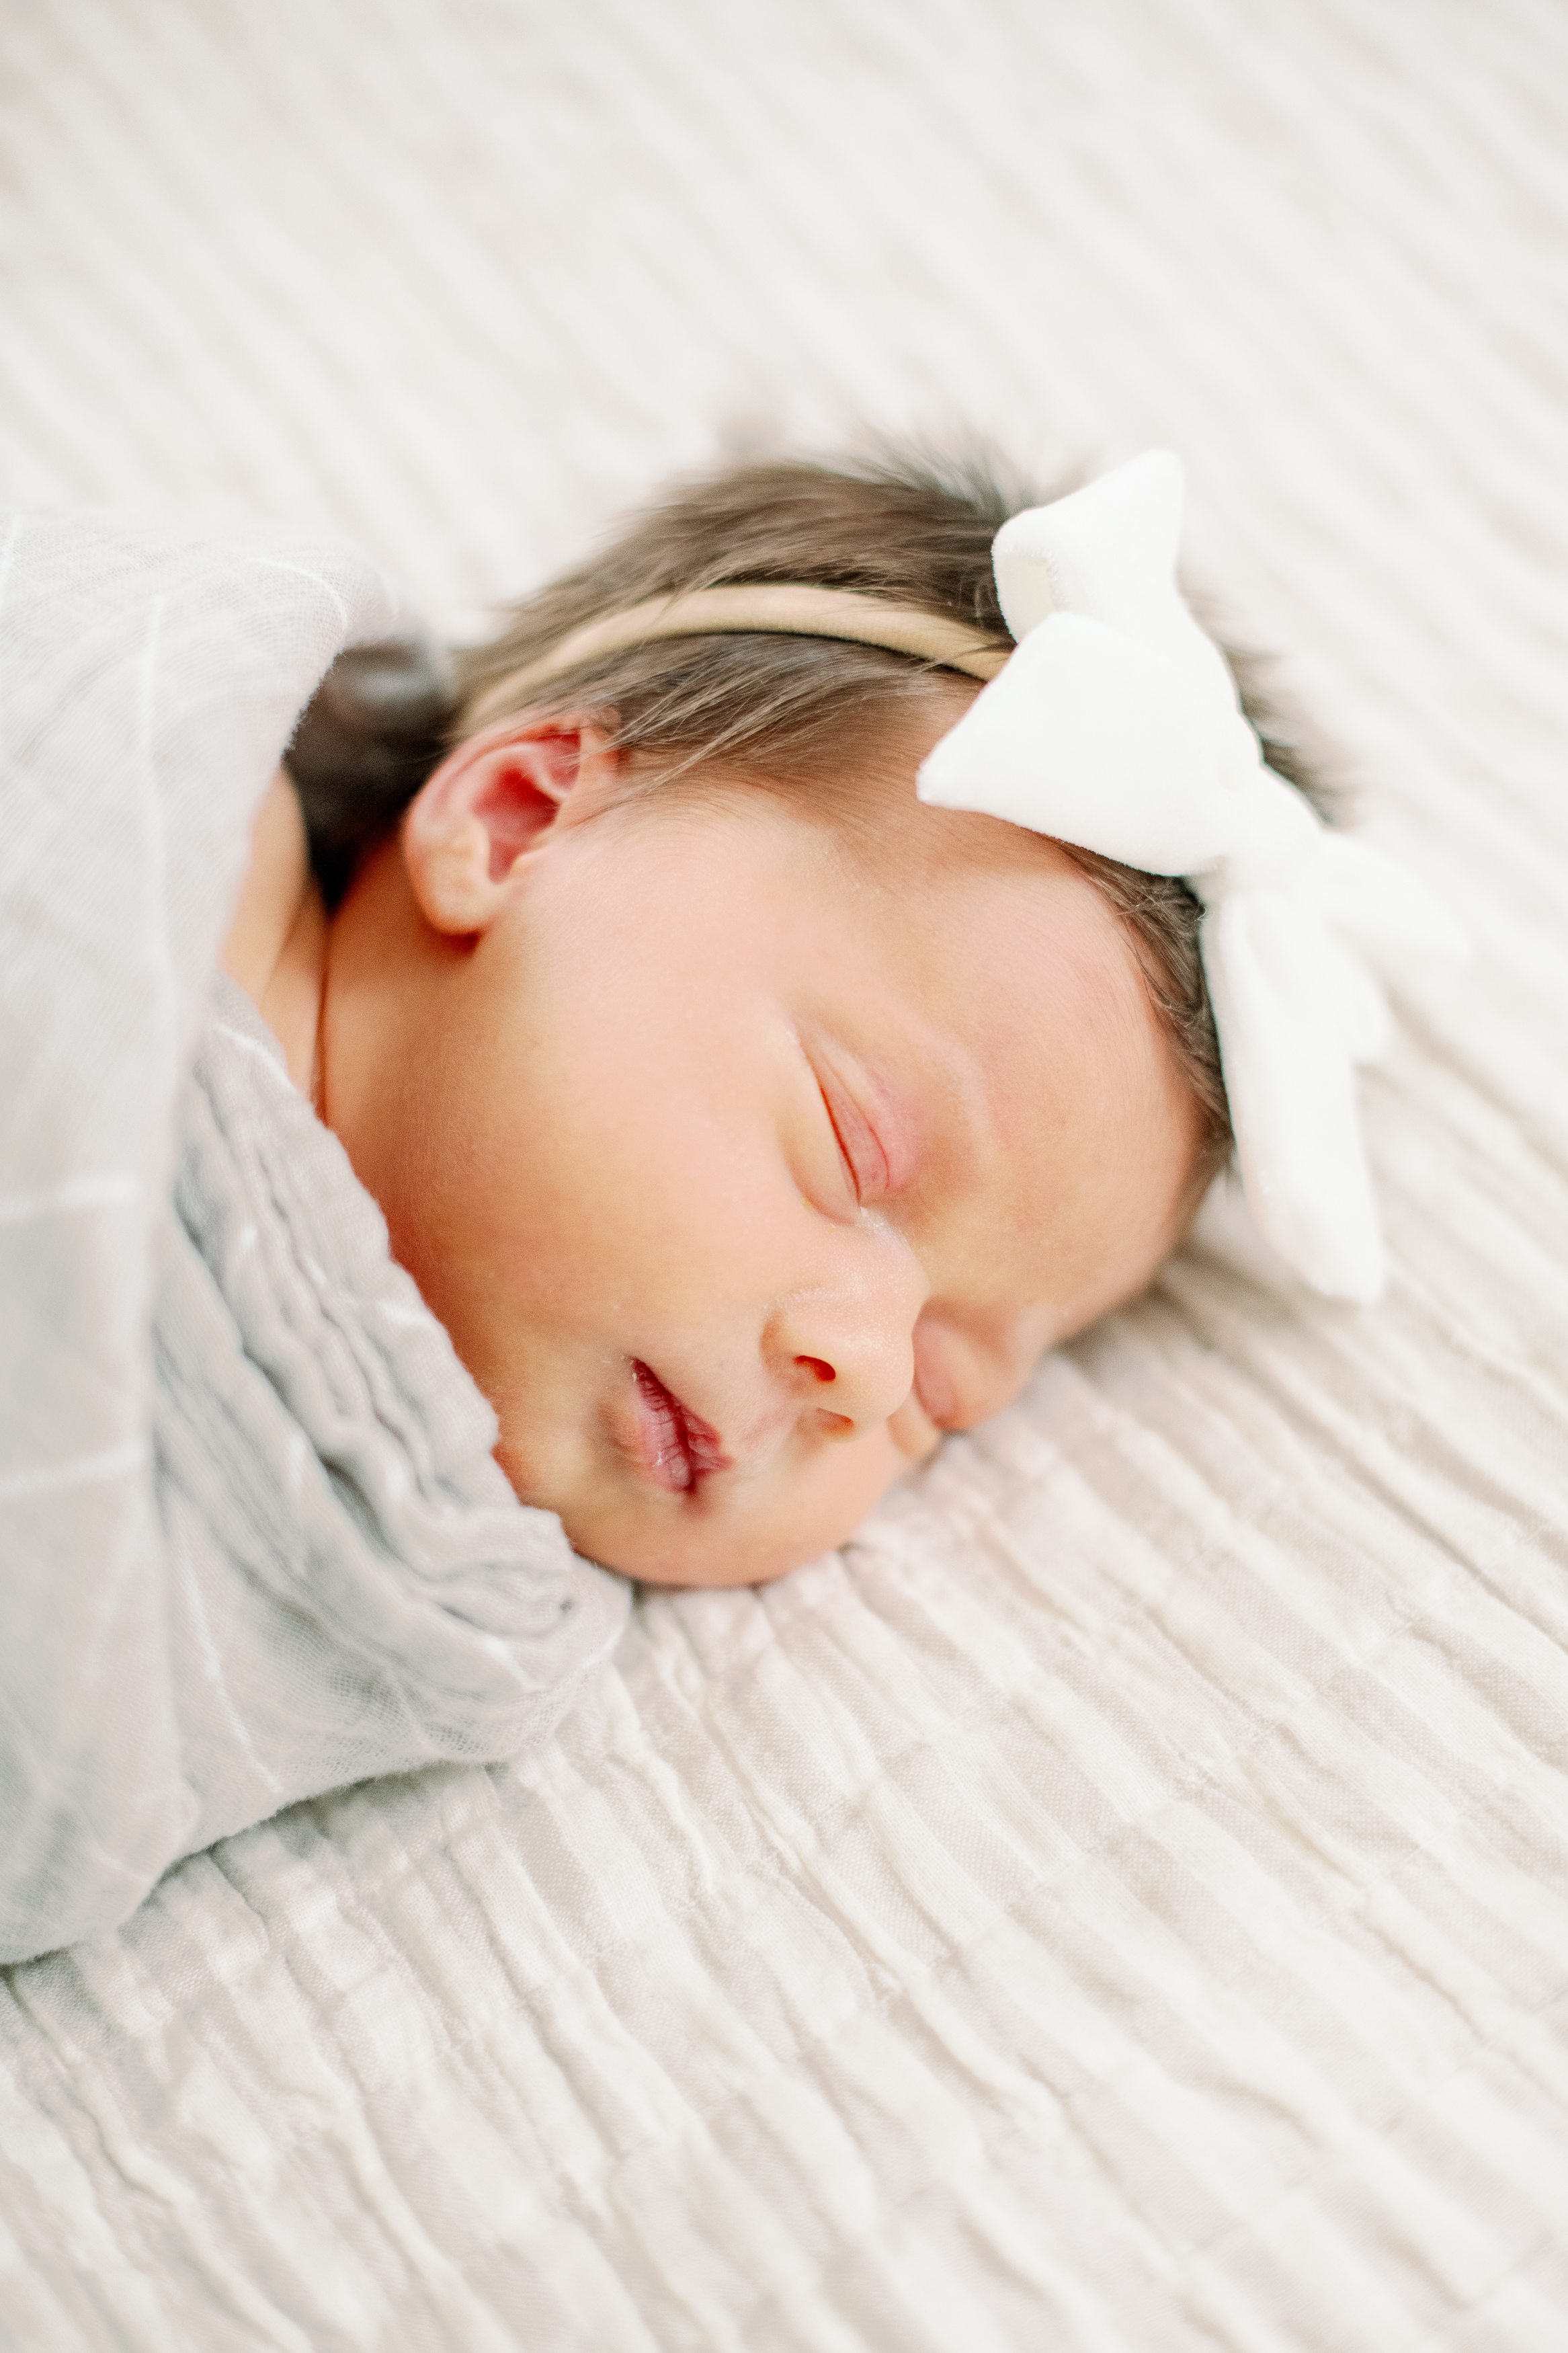 Lifestyle Newborn Photographer | Elmhurst, Chicago, Naples, Las Vegas